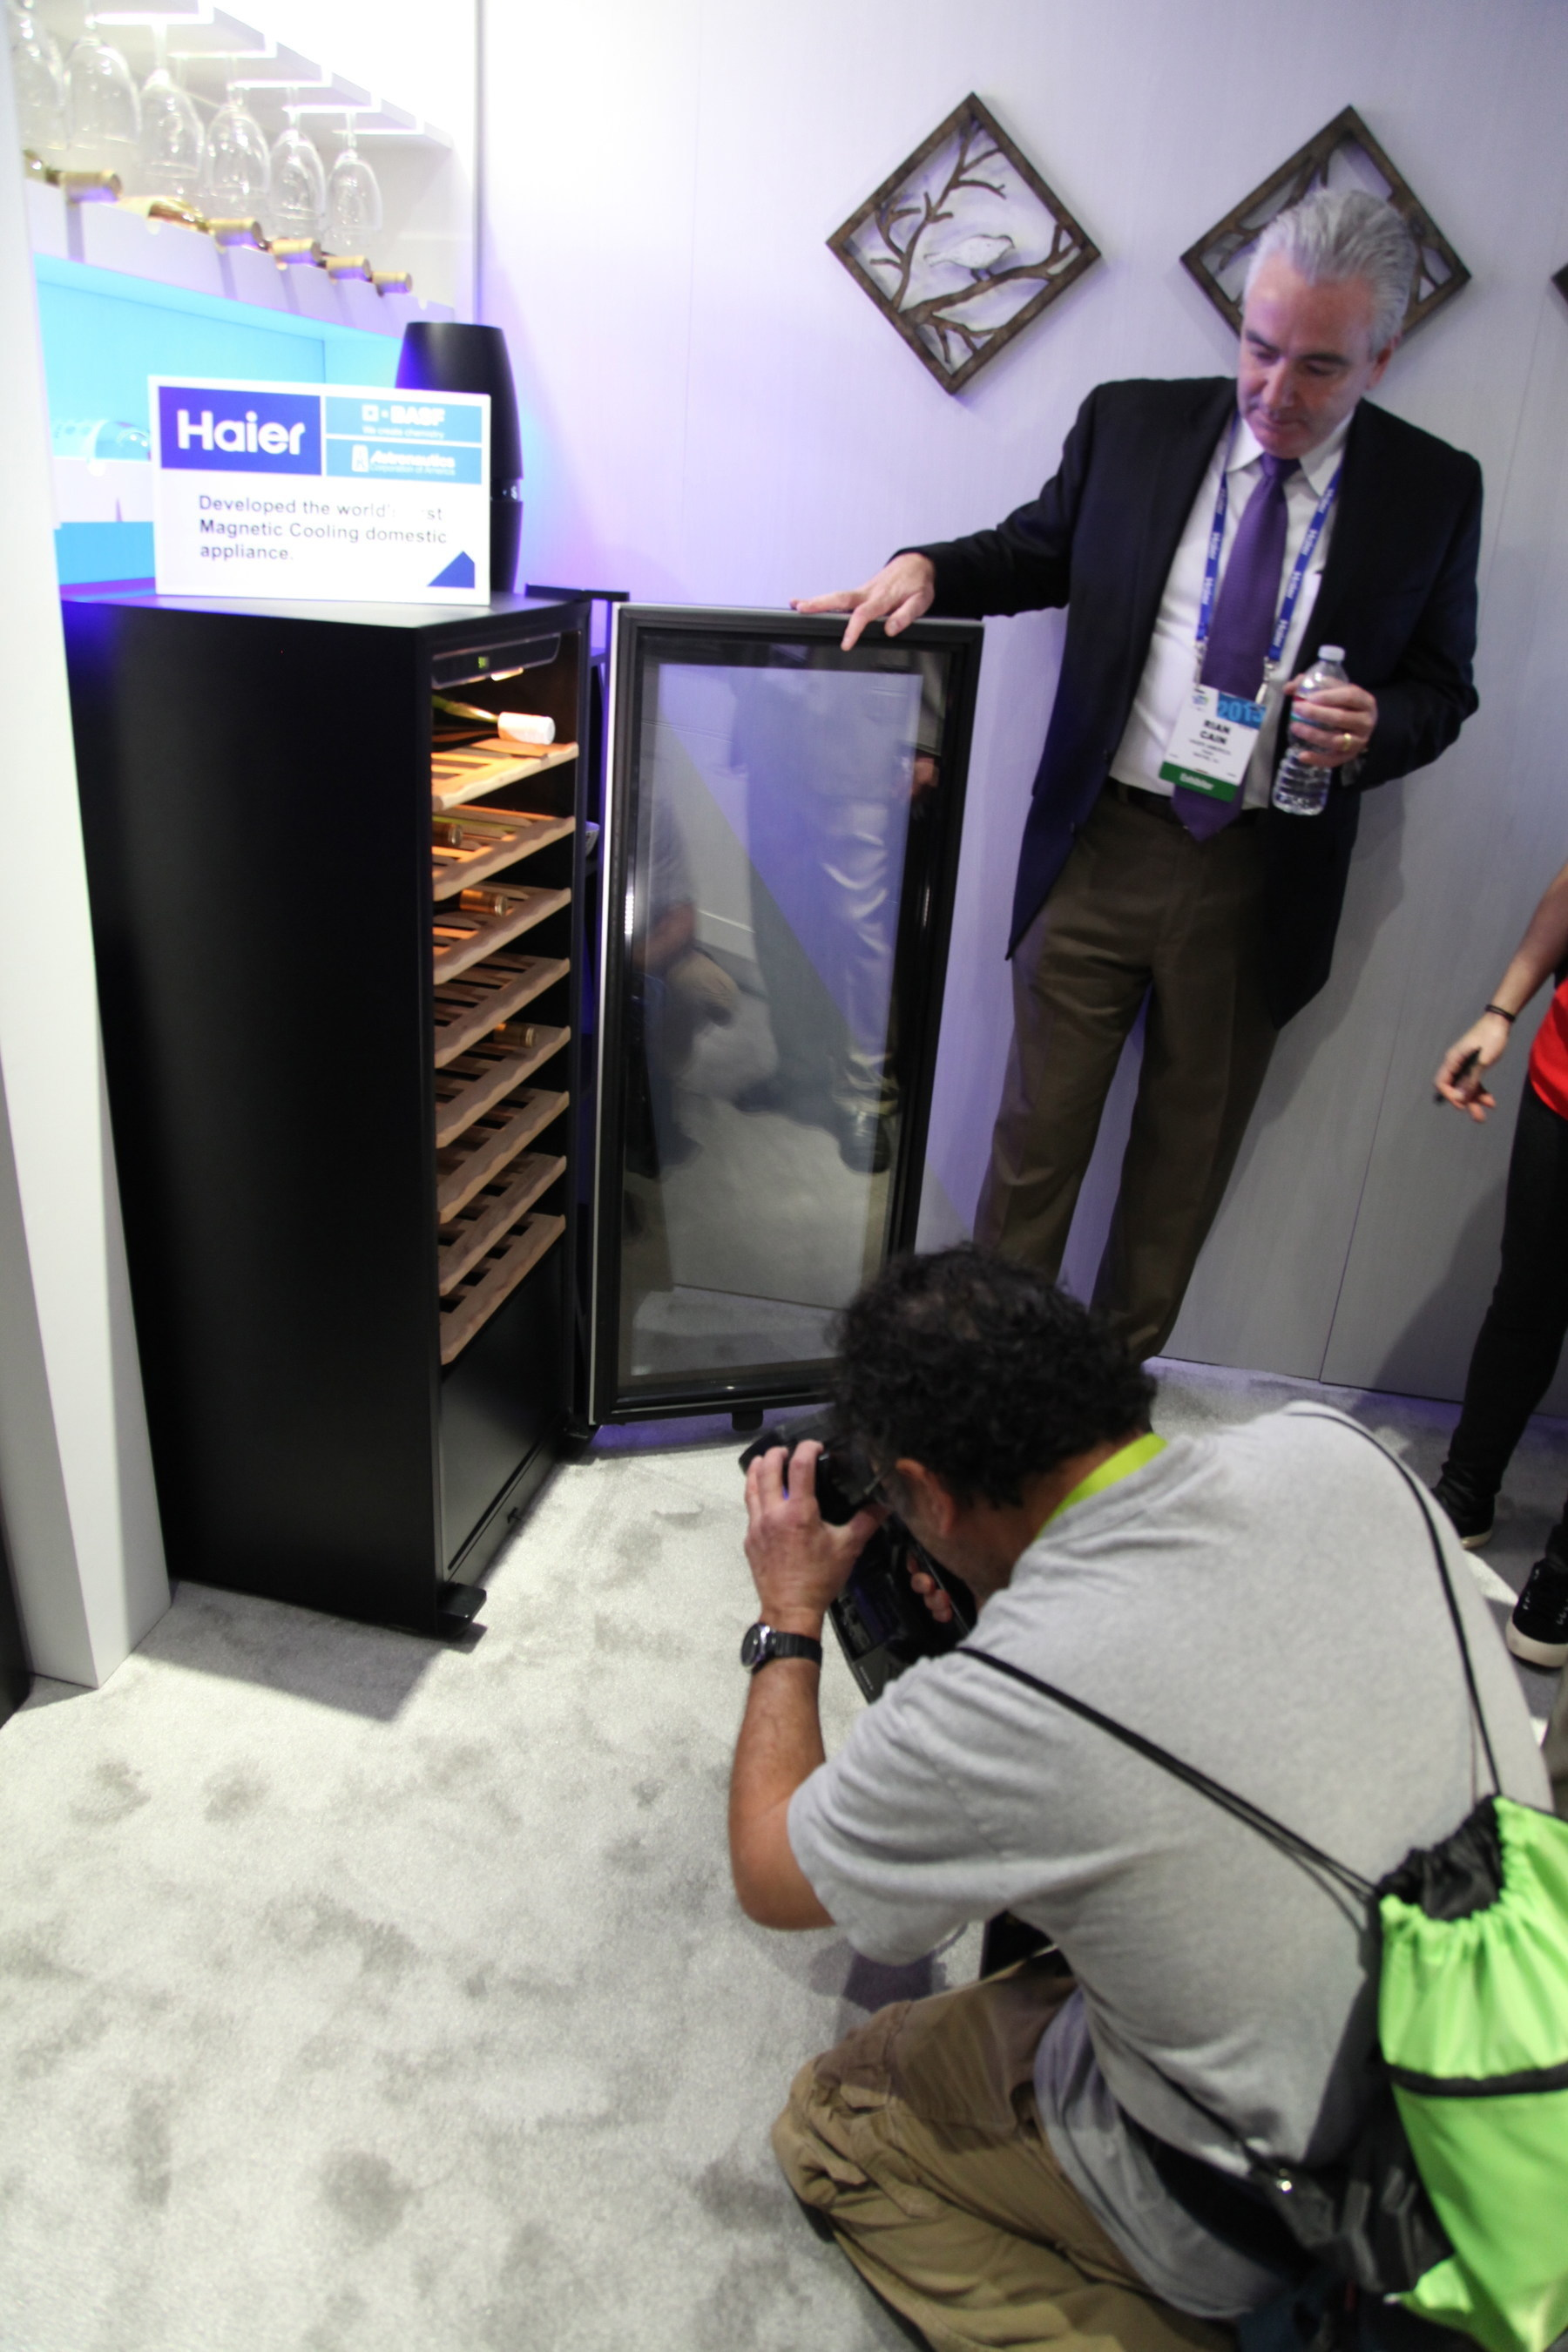 """Haier Presents the World's First """"No-Compressor Wine Cabinet"""" at 2015 CES"""